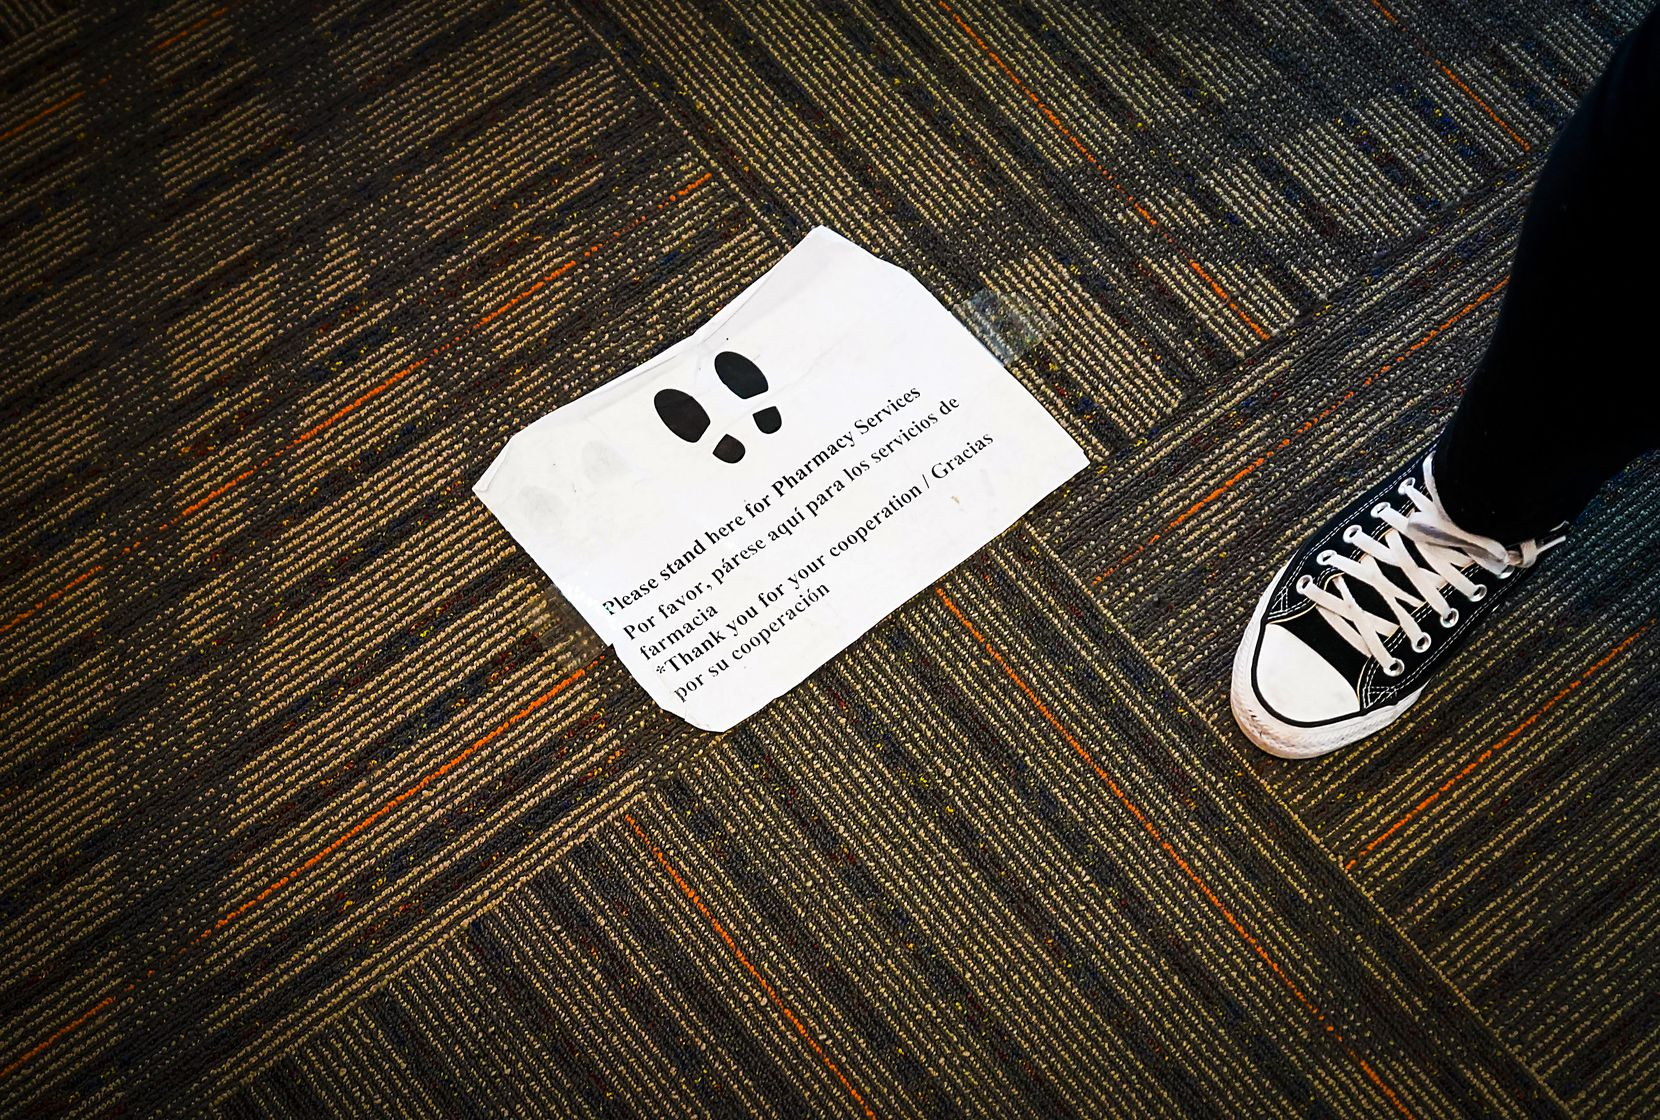 A sign on the floor instructed clients where to wait outside the doorway to fill prescriptions at St. Vincent de Paul Pharmacy at the Northwest Community Center on April 3, 2020, in Dallas. The pharmacy doubled its prescription volume as the coronavirus spread in Dallas County.